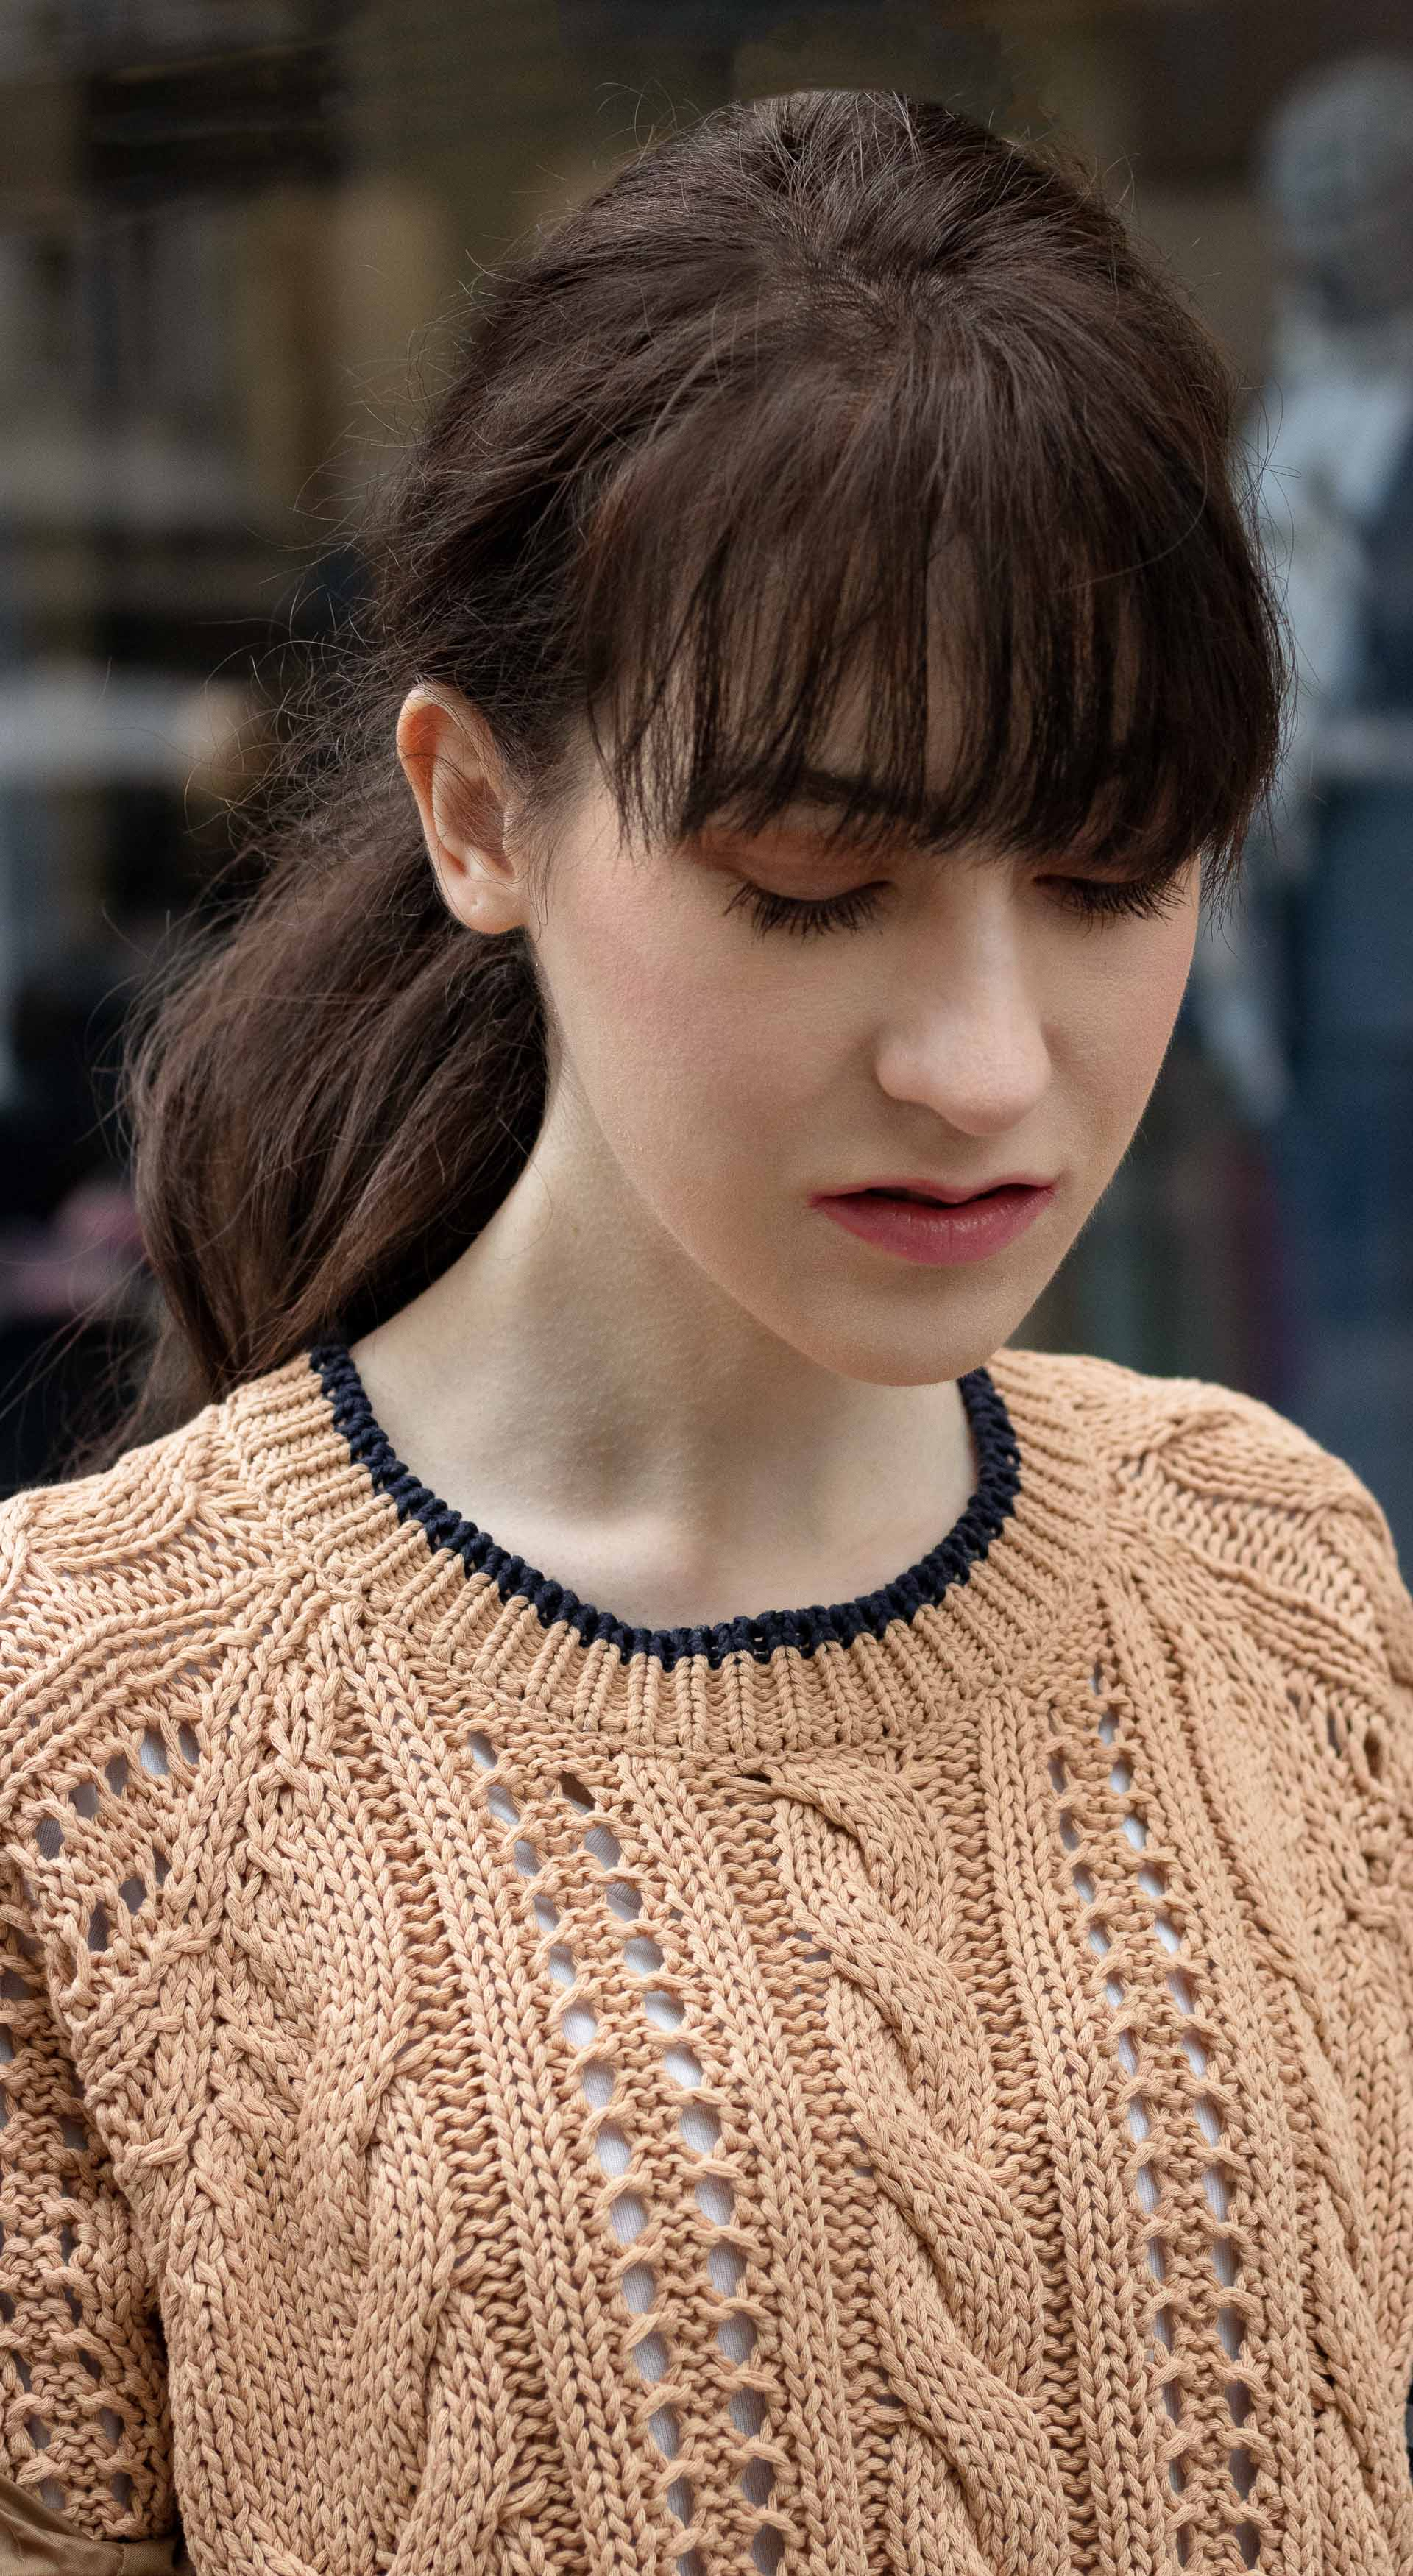 Veronika Lipar Brunette from Wall Street camel beige sweater low ponytail bangs beige makeup